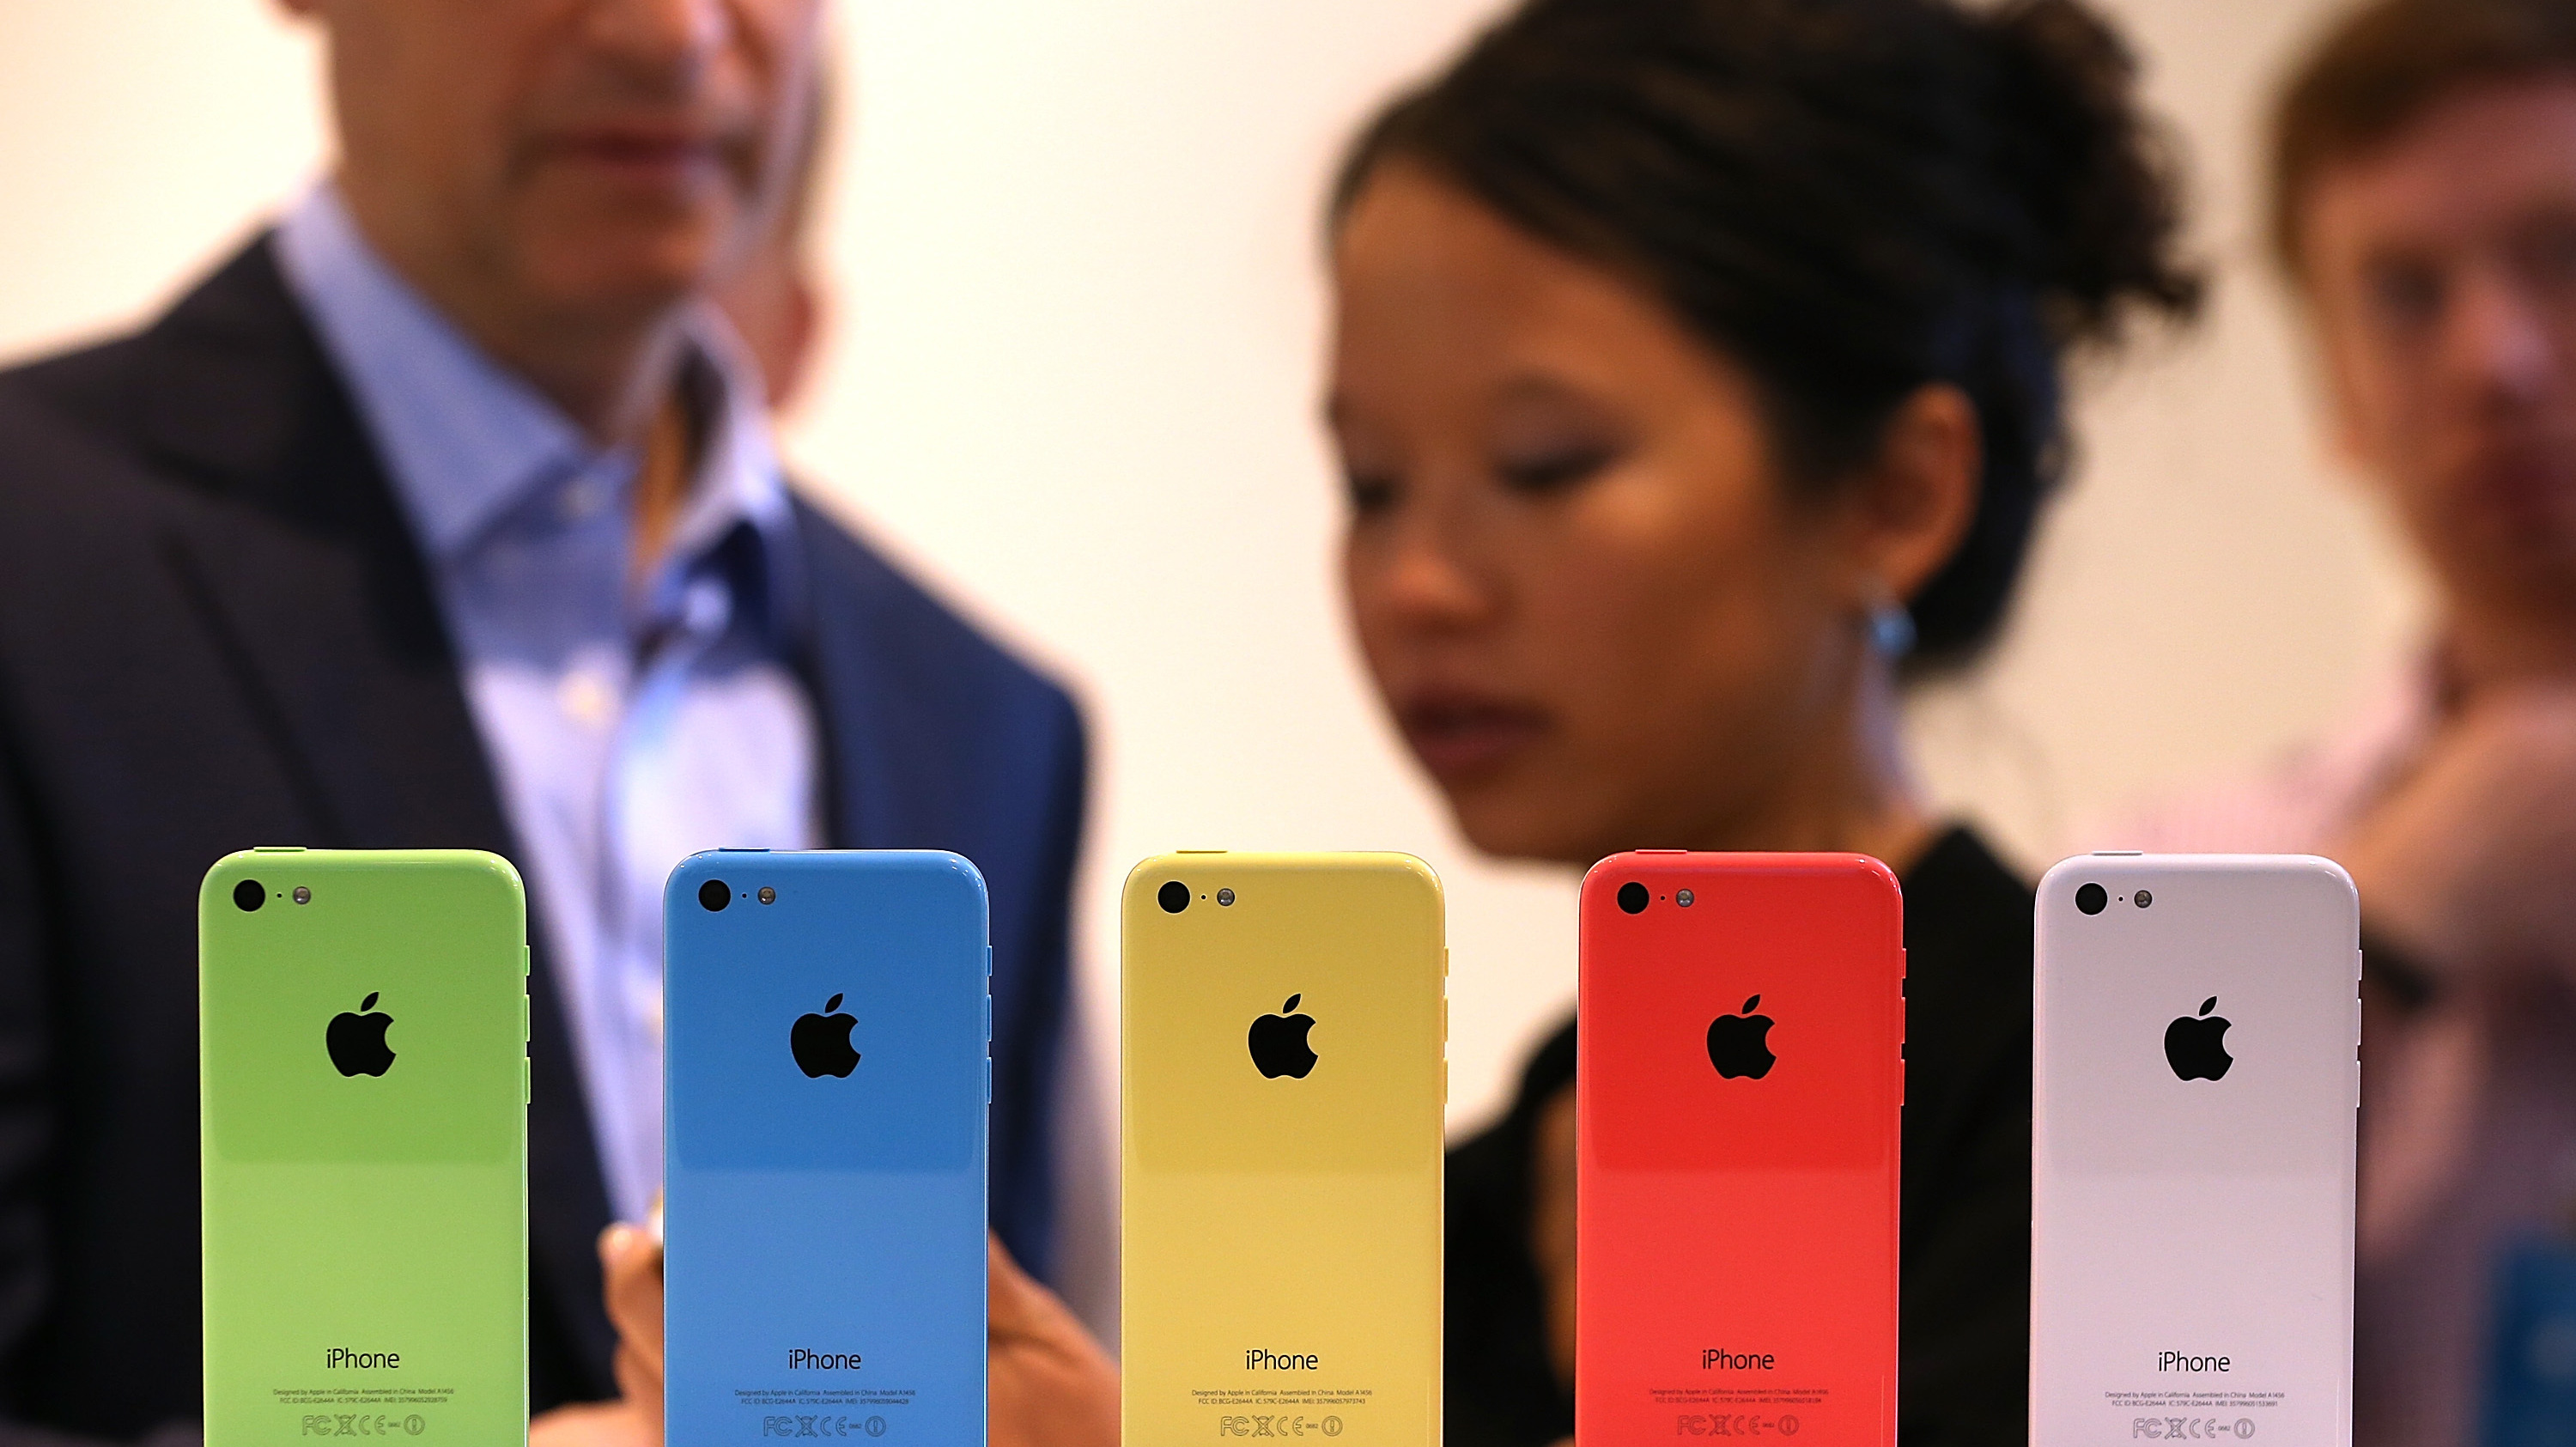 Will New iPhone Colors Create A Hierarchy Among Users?